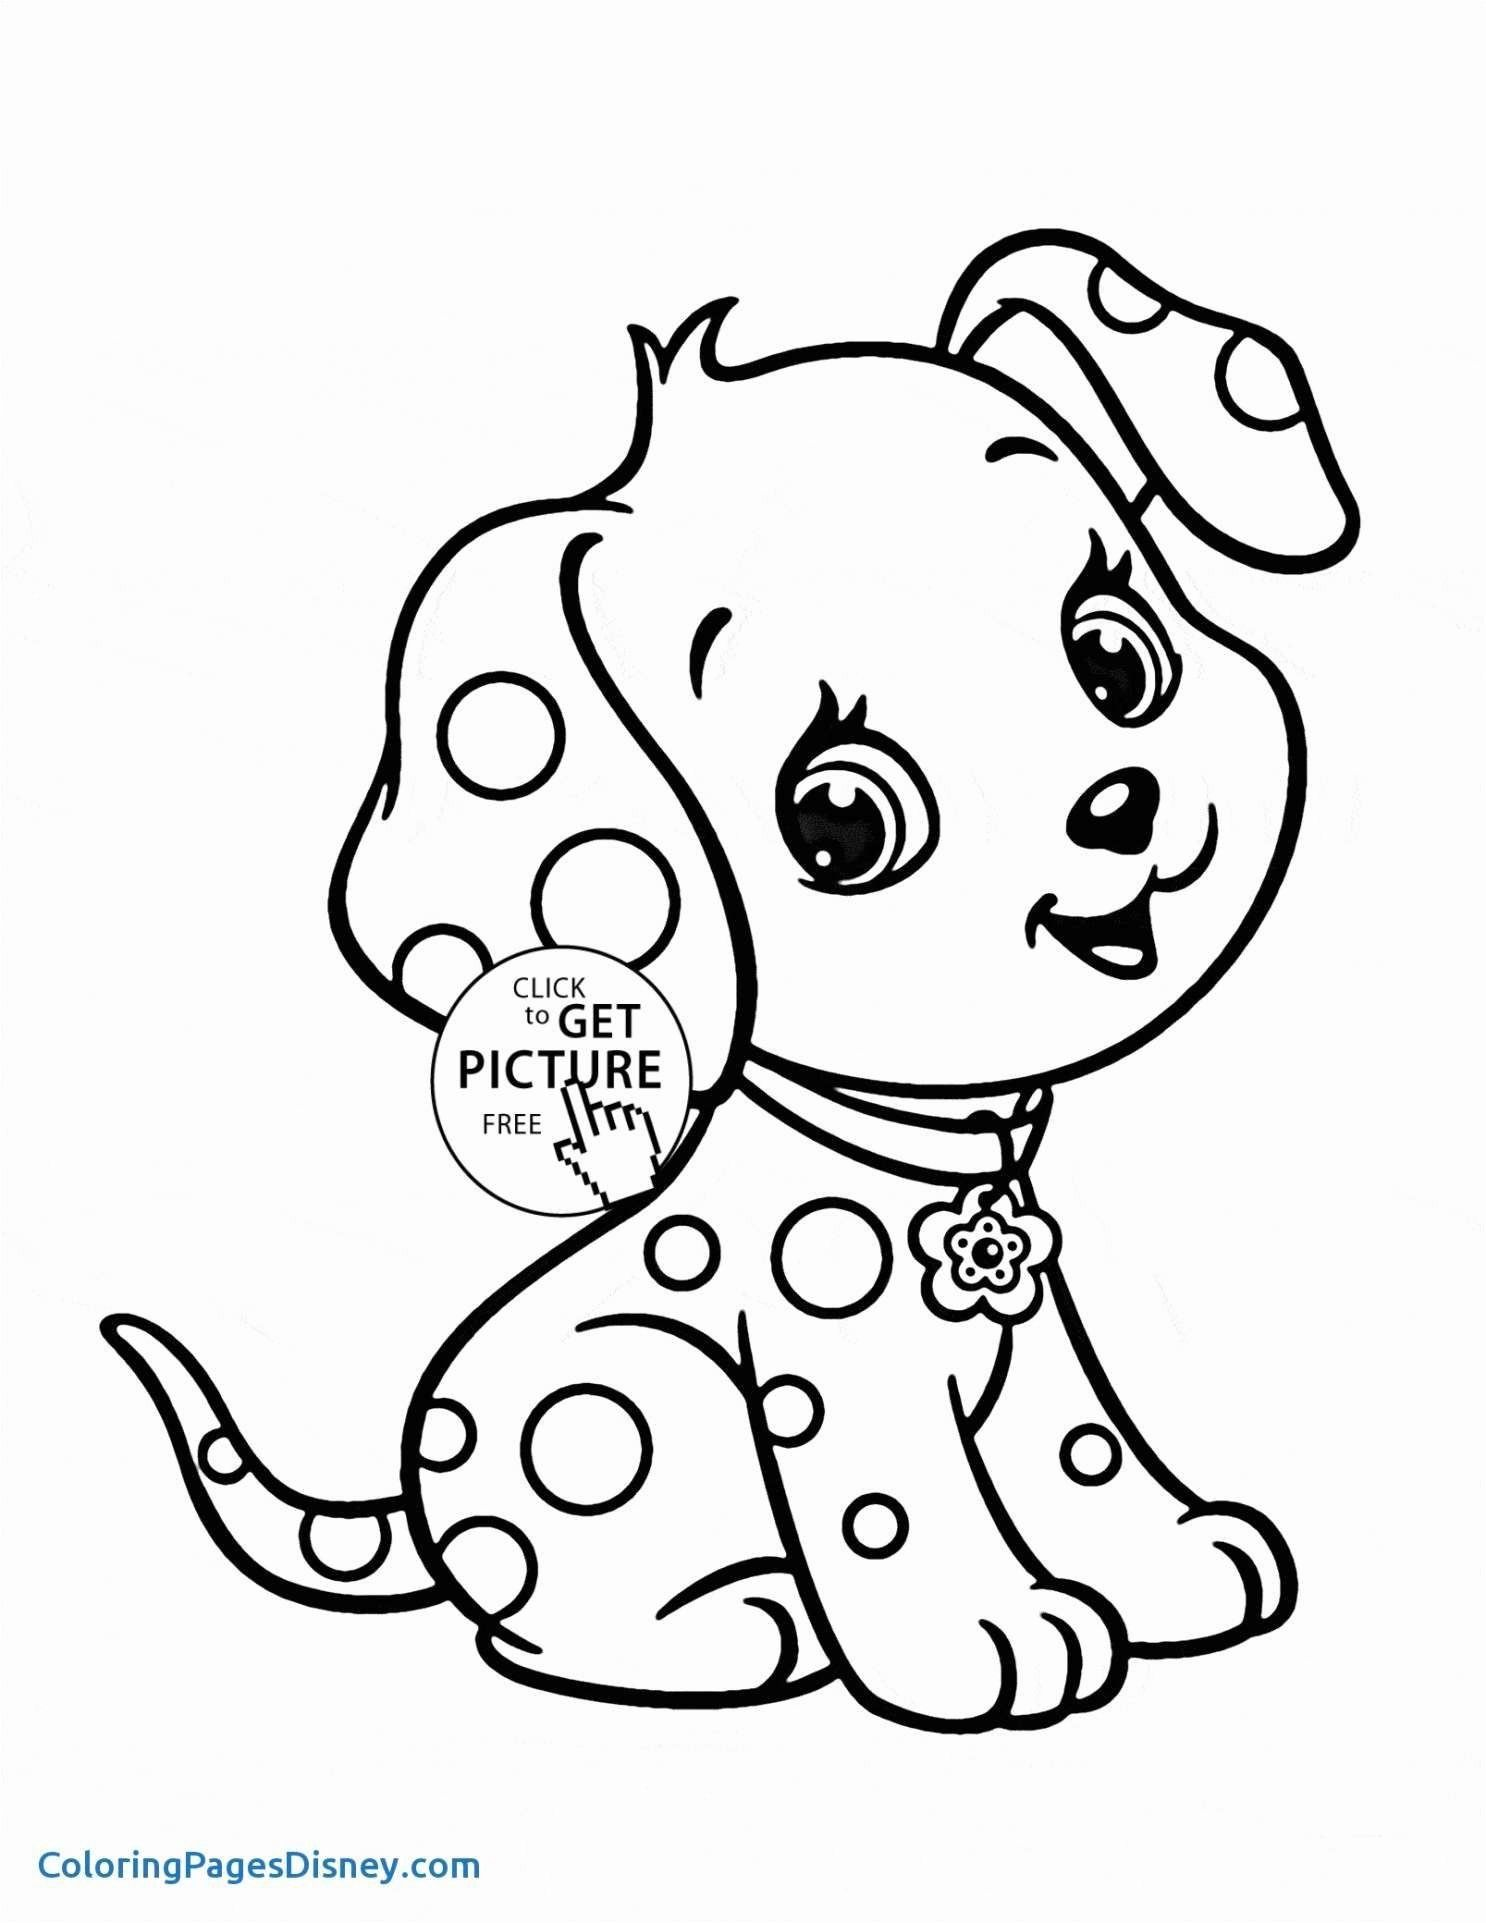 Free Printable Pumpkin Coloring Sheets Fresh Unique Cartoon Goat Coloring Page Trasporti Unicorn Coloring Pages Animal Coloring Pages Puppy Coloring Pages